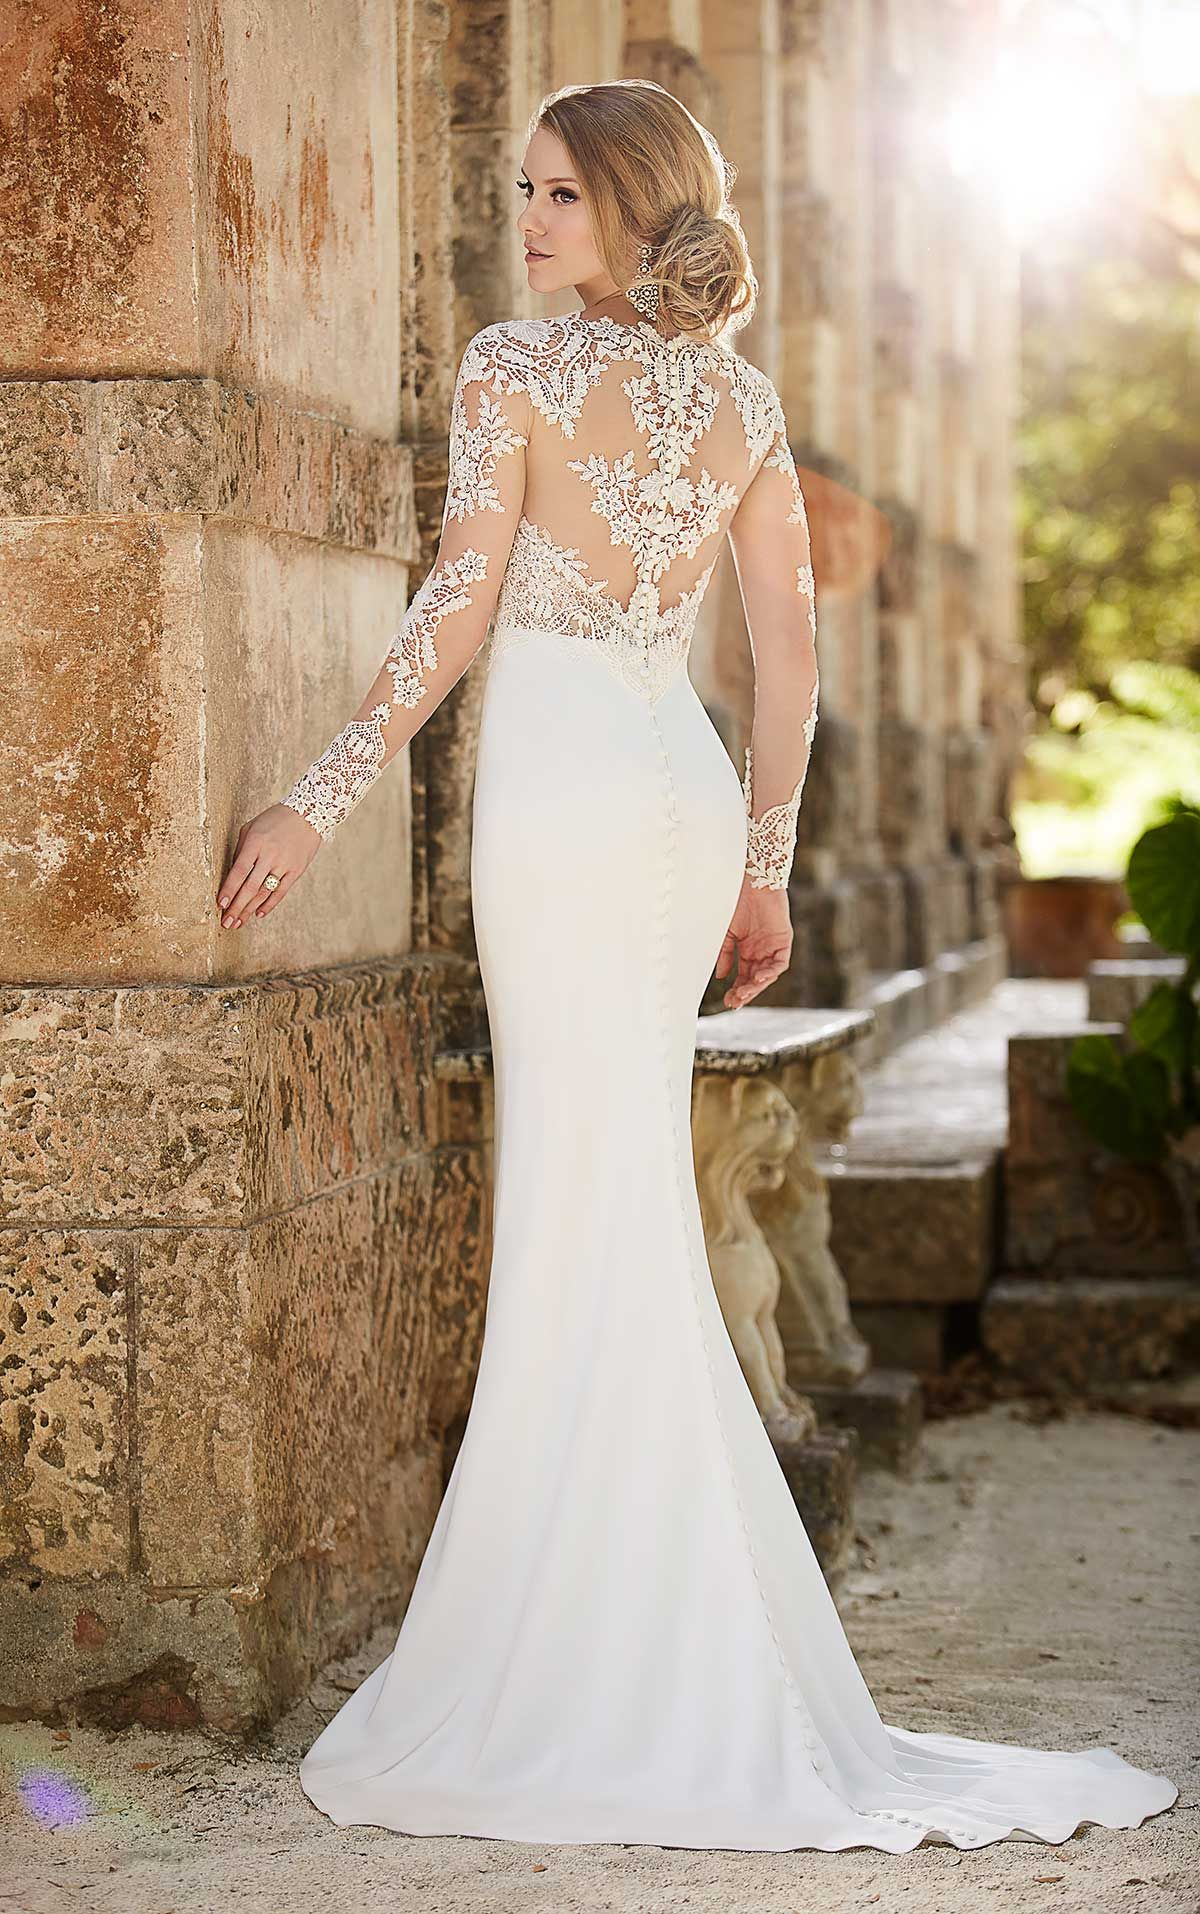 Lace Illusion Sheath Wedding Dress from the Martina Liana Collection ...